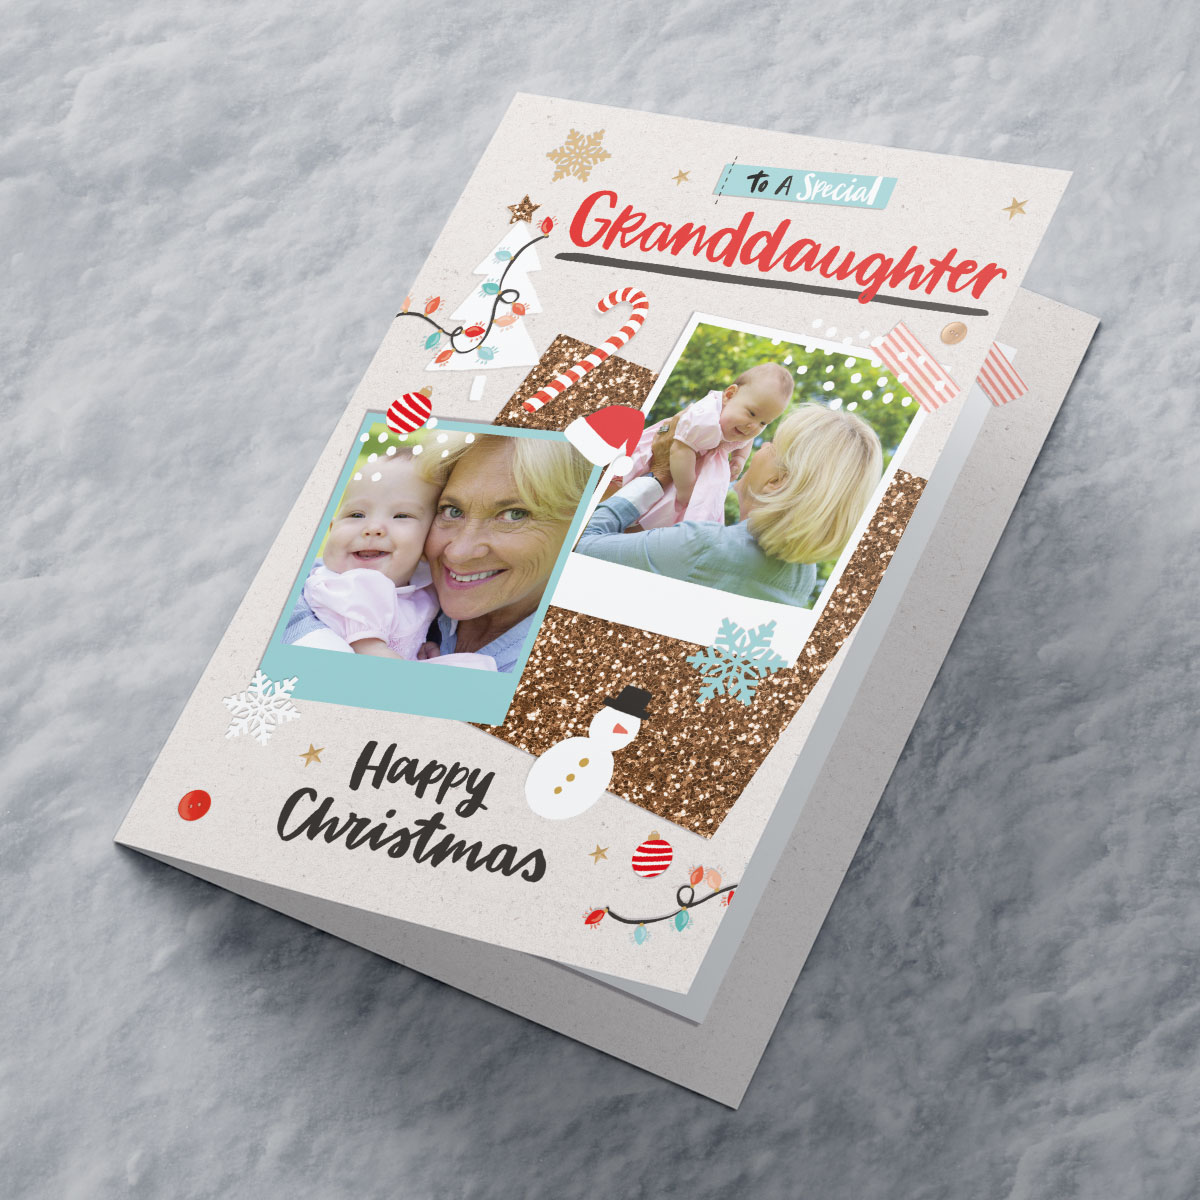 Multi Photo Upload Christmas Card - Special Granddaughter